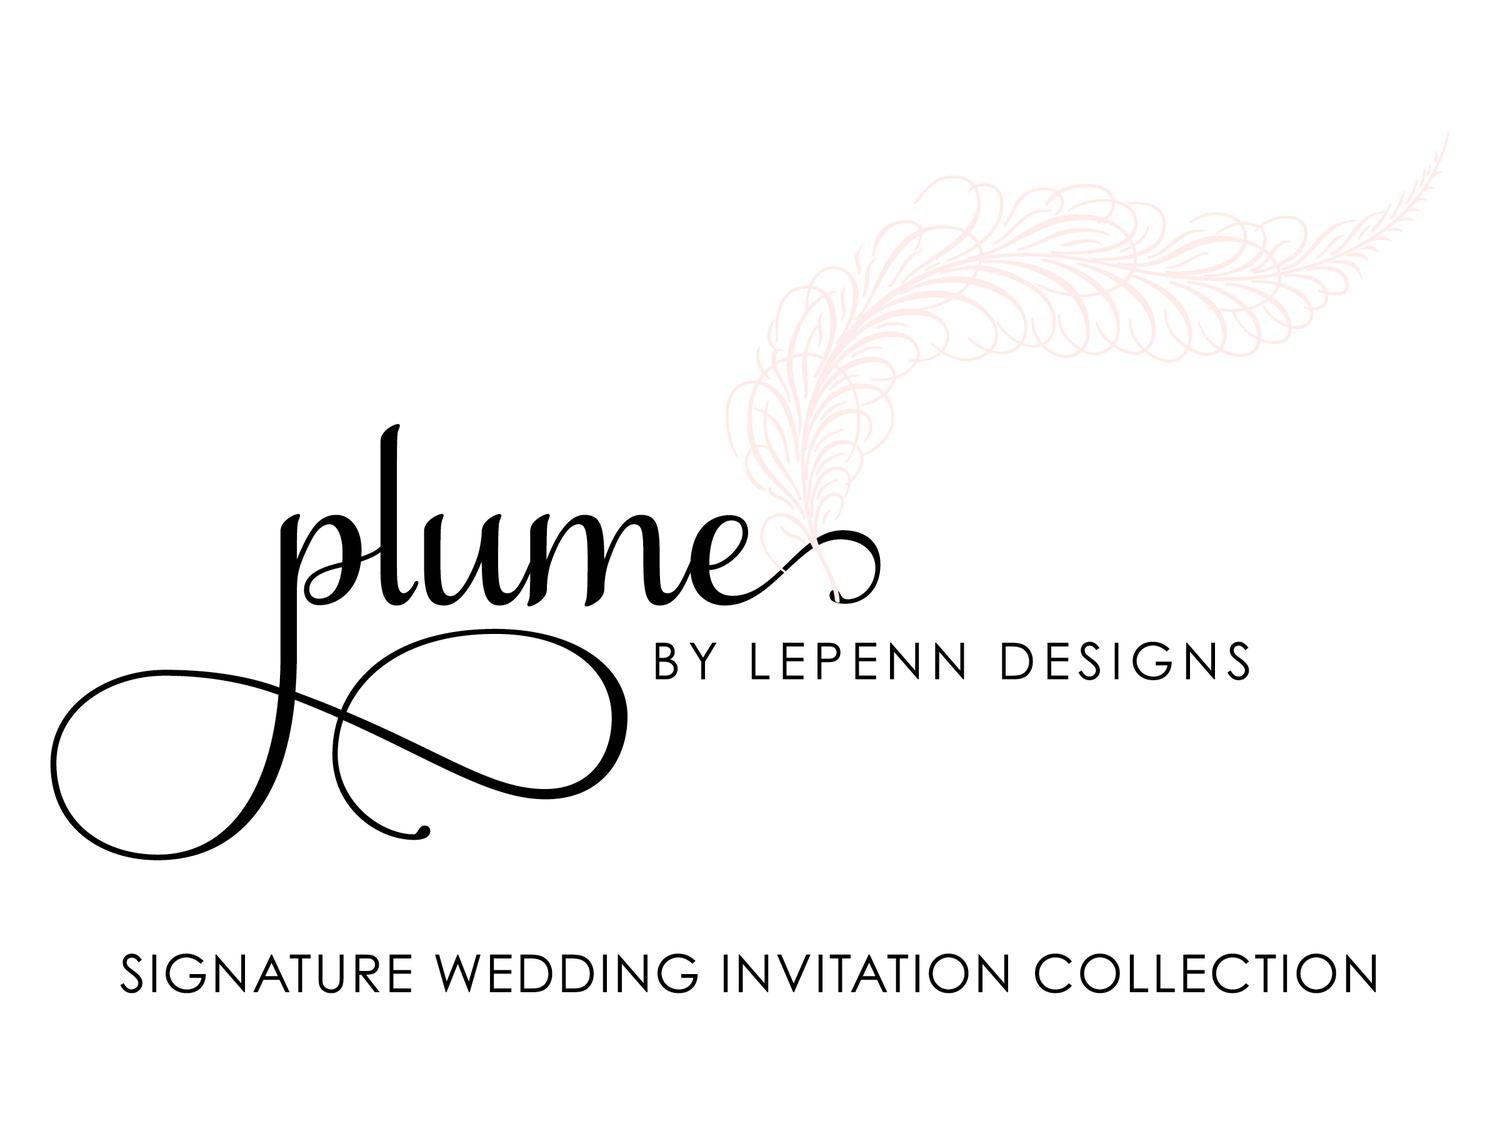 The Plume Collection by Lepenn Designs